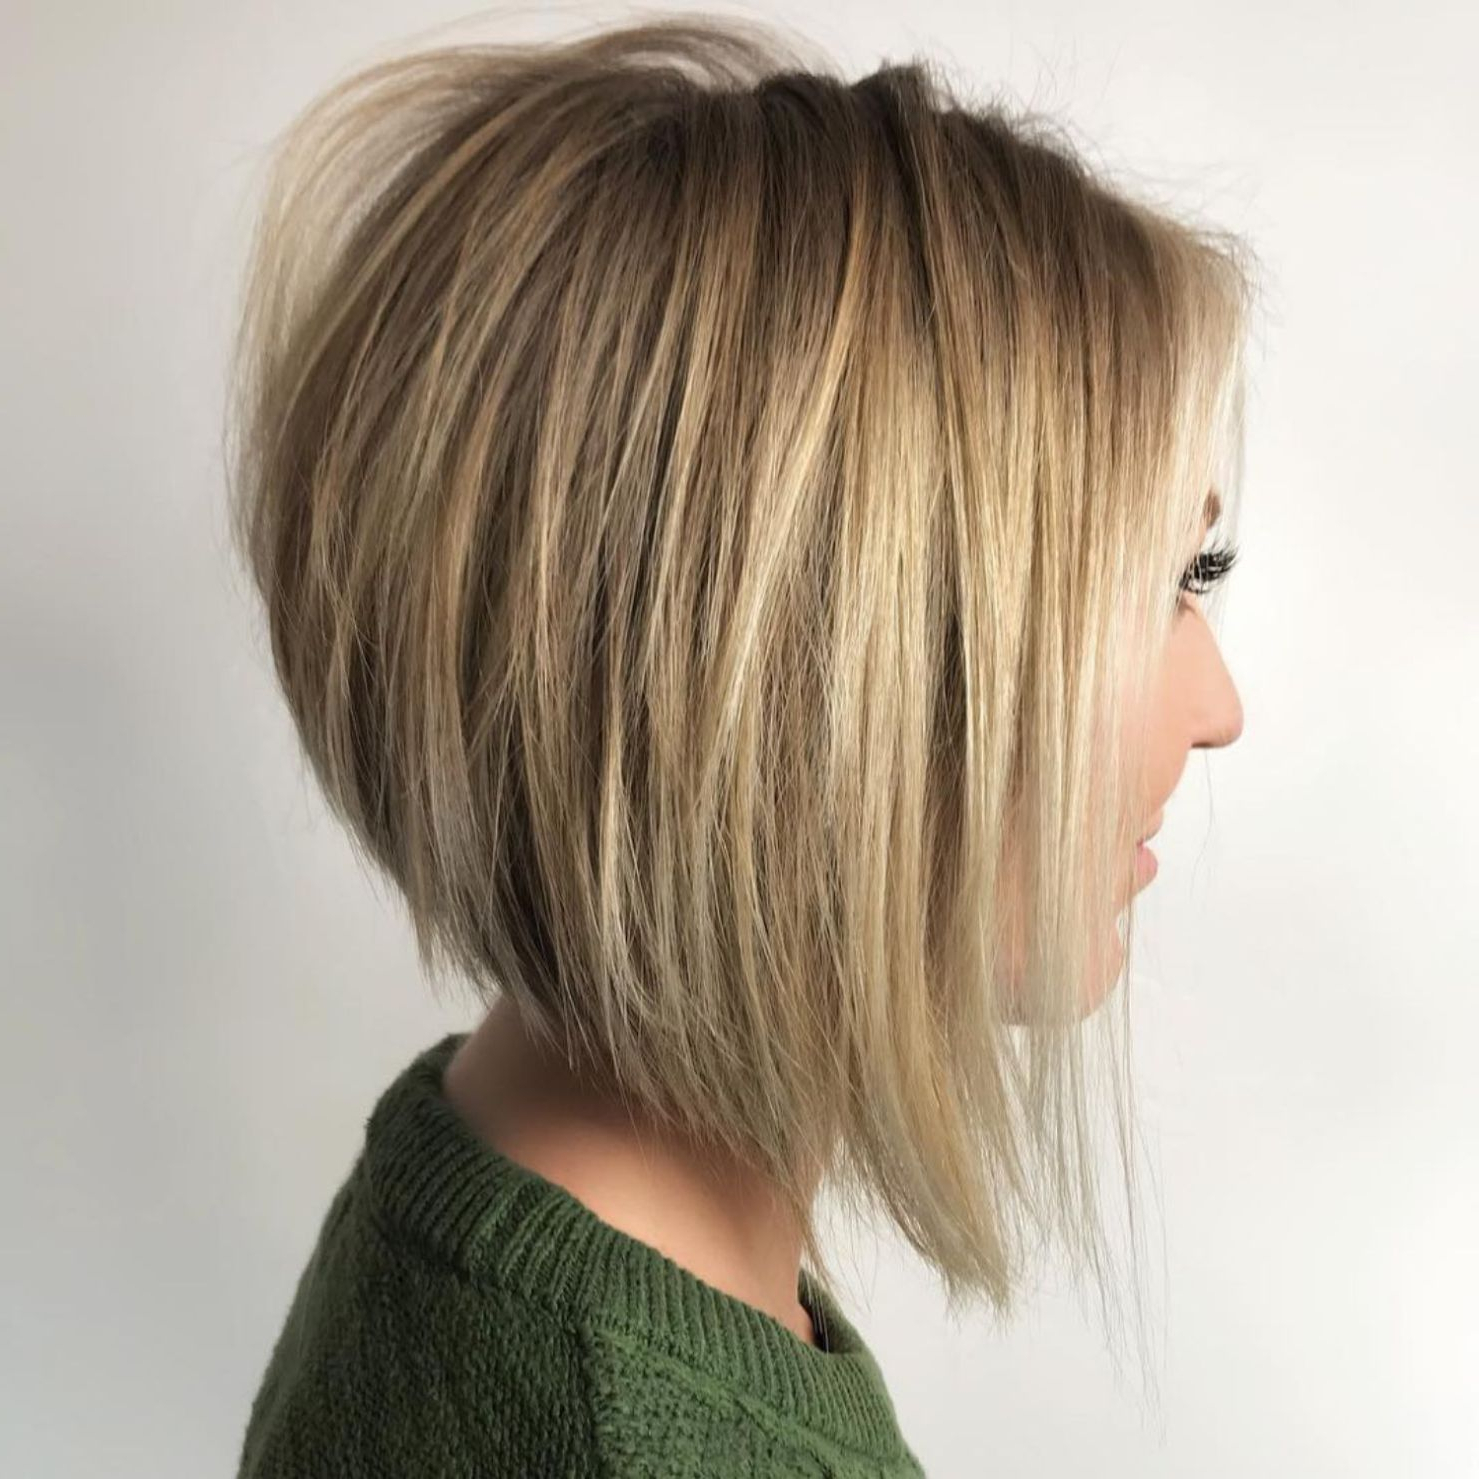 60 Layered Bob Styles: Modern Haircuts With Layers For Any Within Dynamic Tousled Blonde Bob Hairstyles With Dark Underlayer (View 11 of 20)